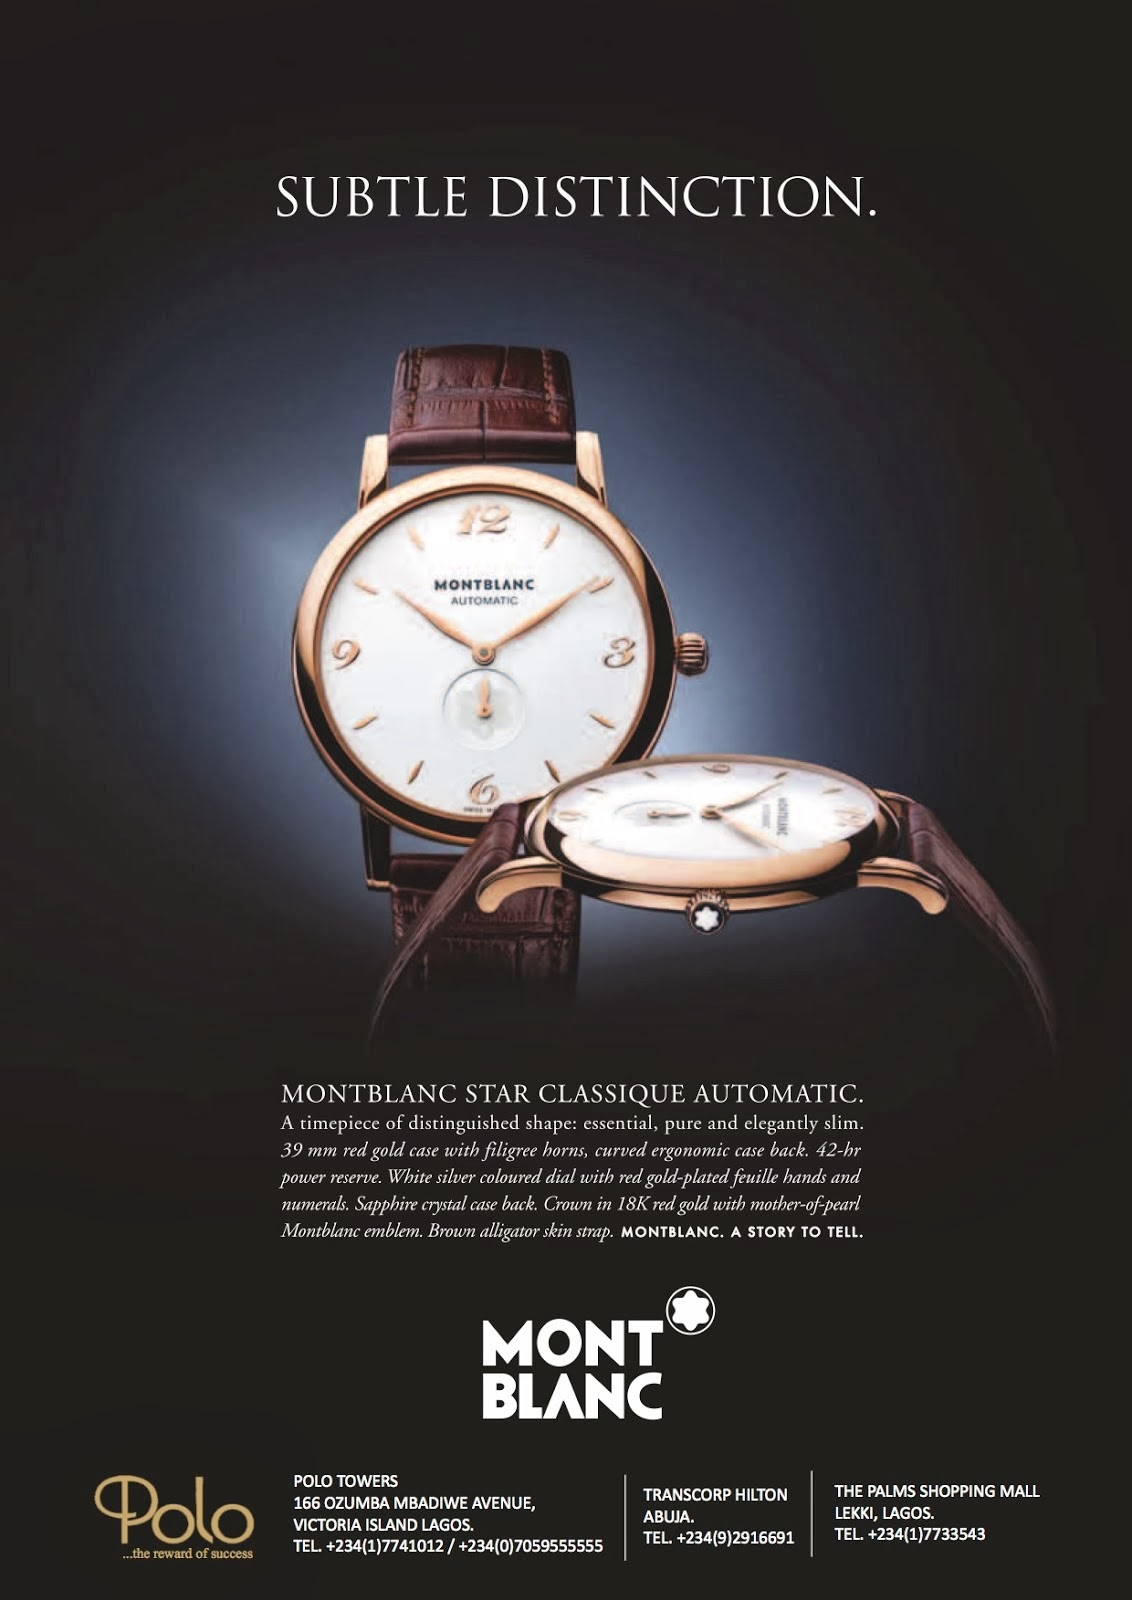 MONT BLANC STAR CLASSIQUE AUTOMATIC